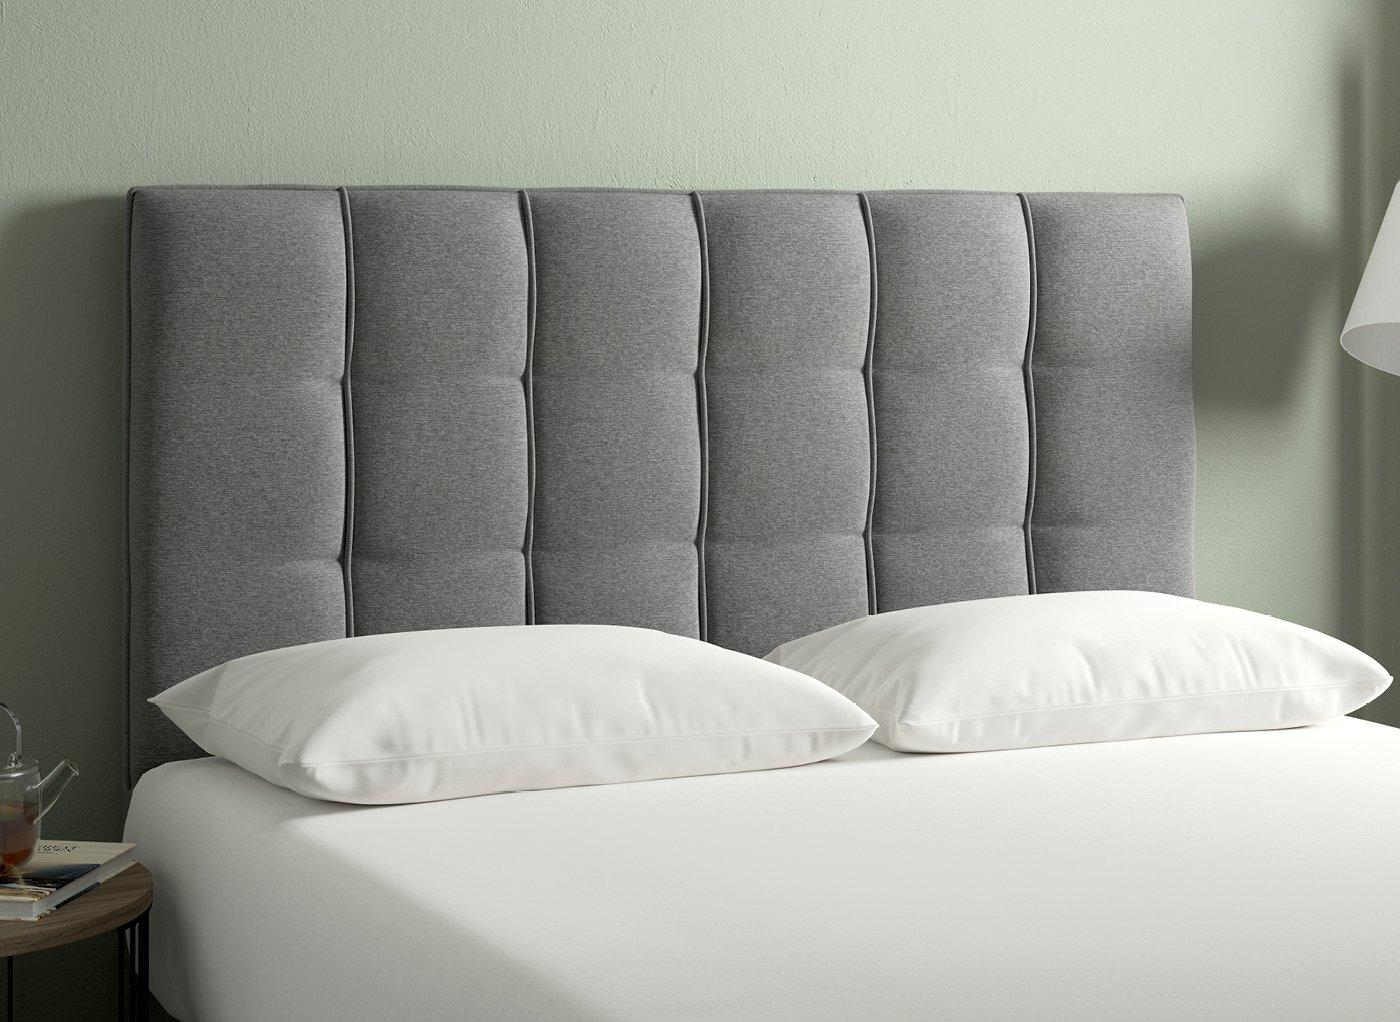 Iowa Headboard 4'0 Small double GREY